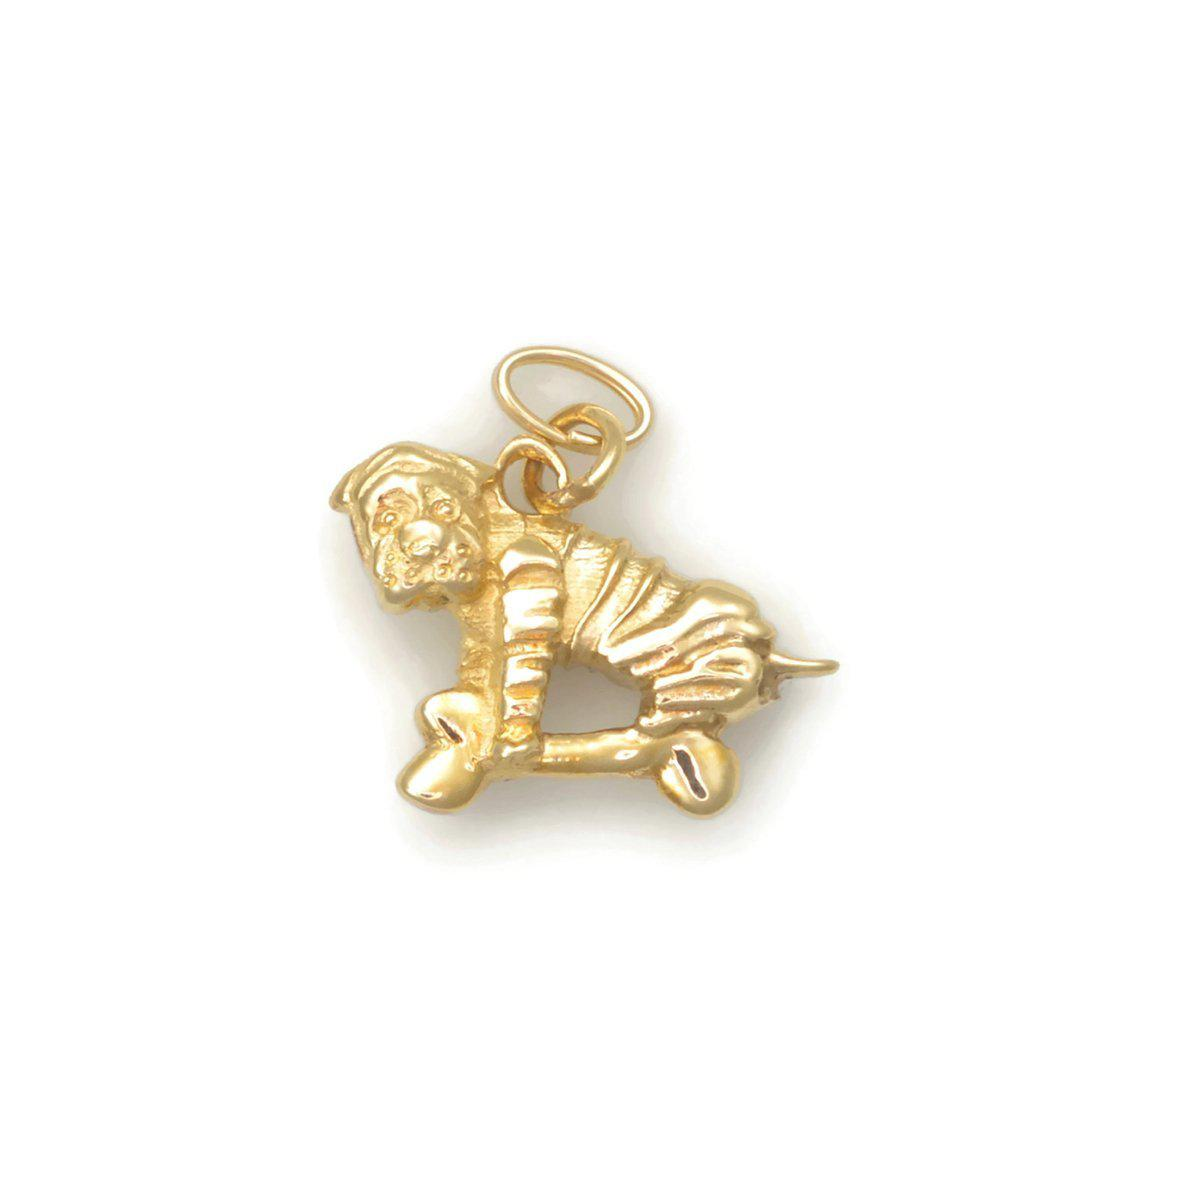 Donna Pizarro Designs 14kt Yellow Gold Chinese Shar Pei Charm